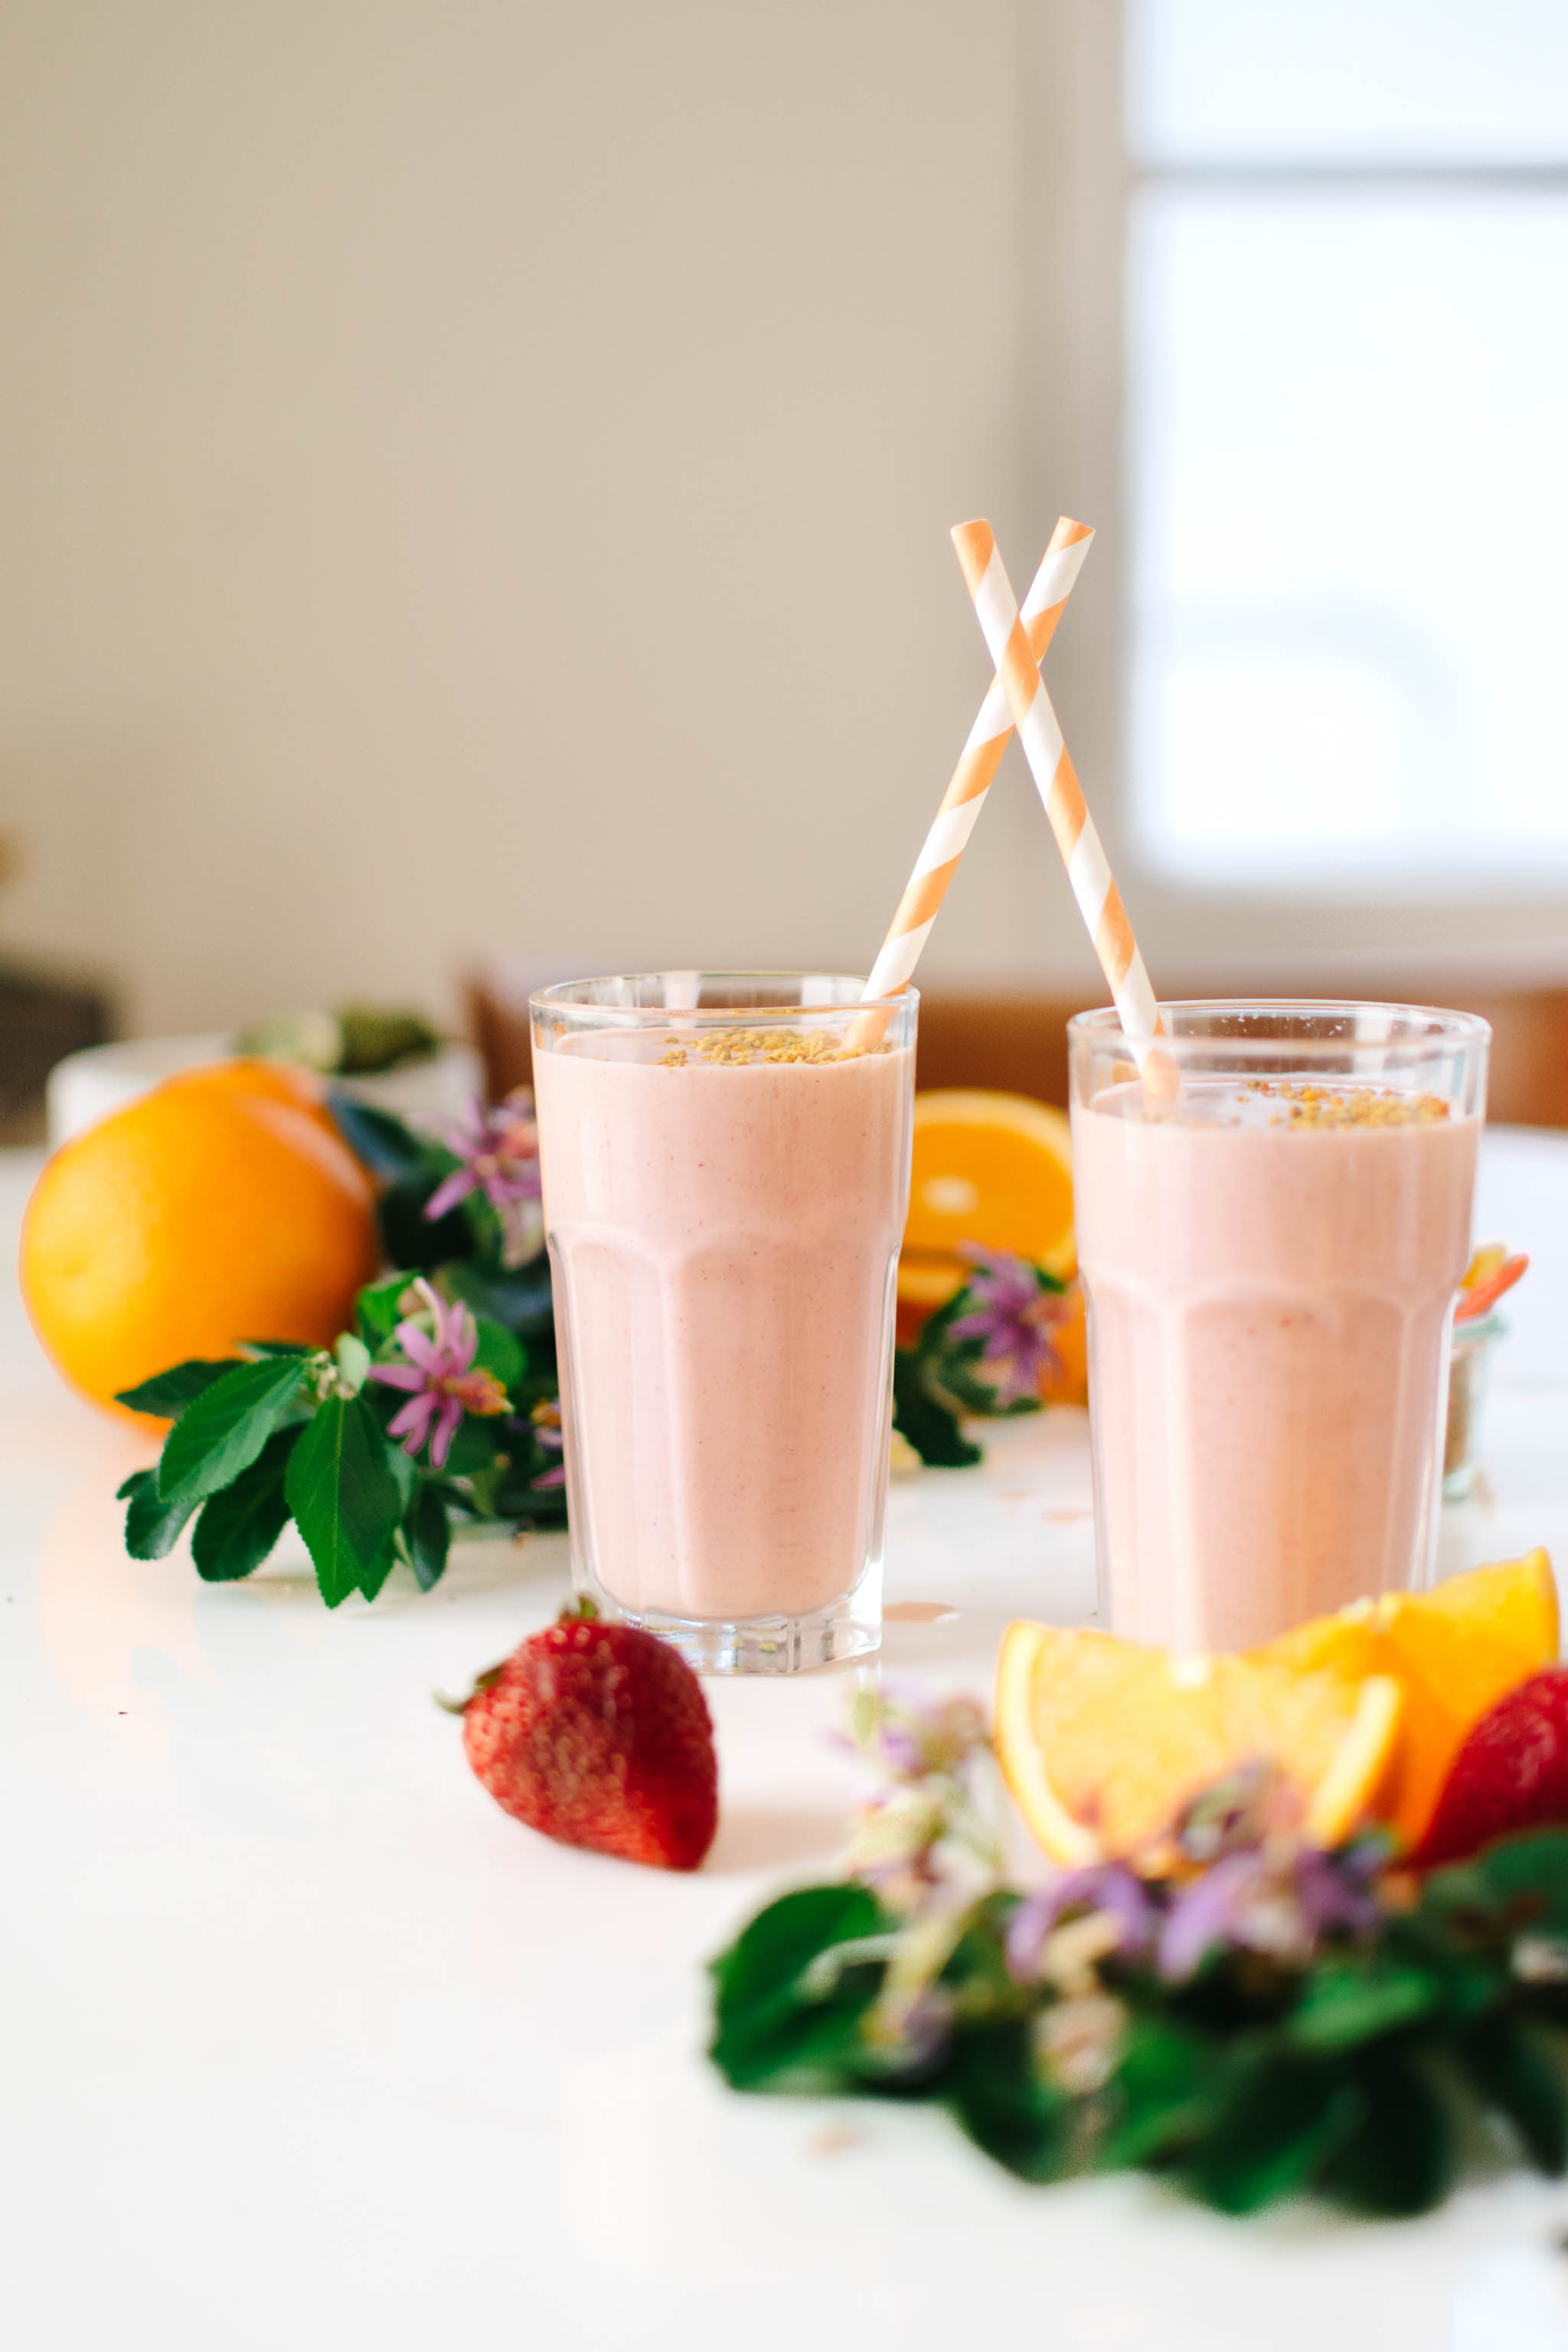 Glasses of Strawberry Orange Blossom Creamsicle Smoothie